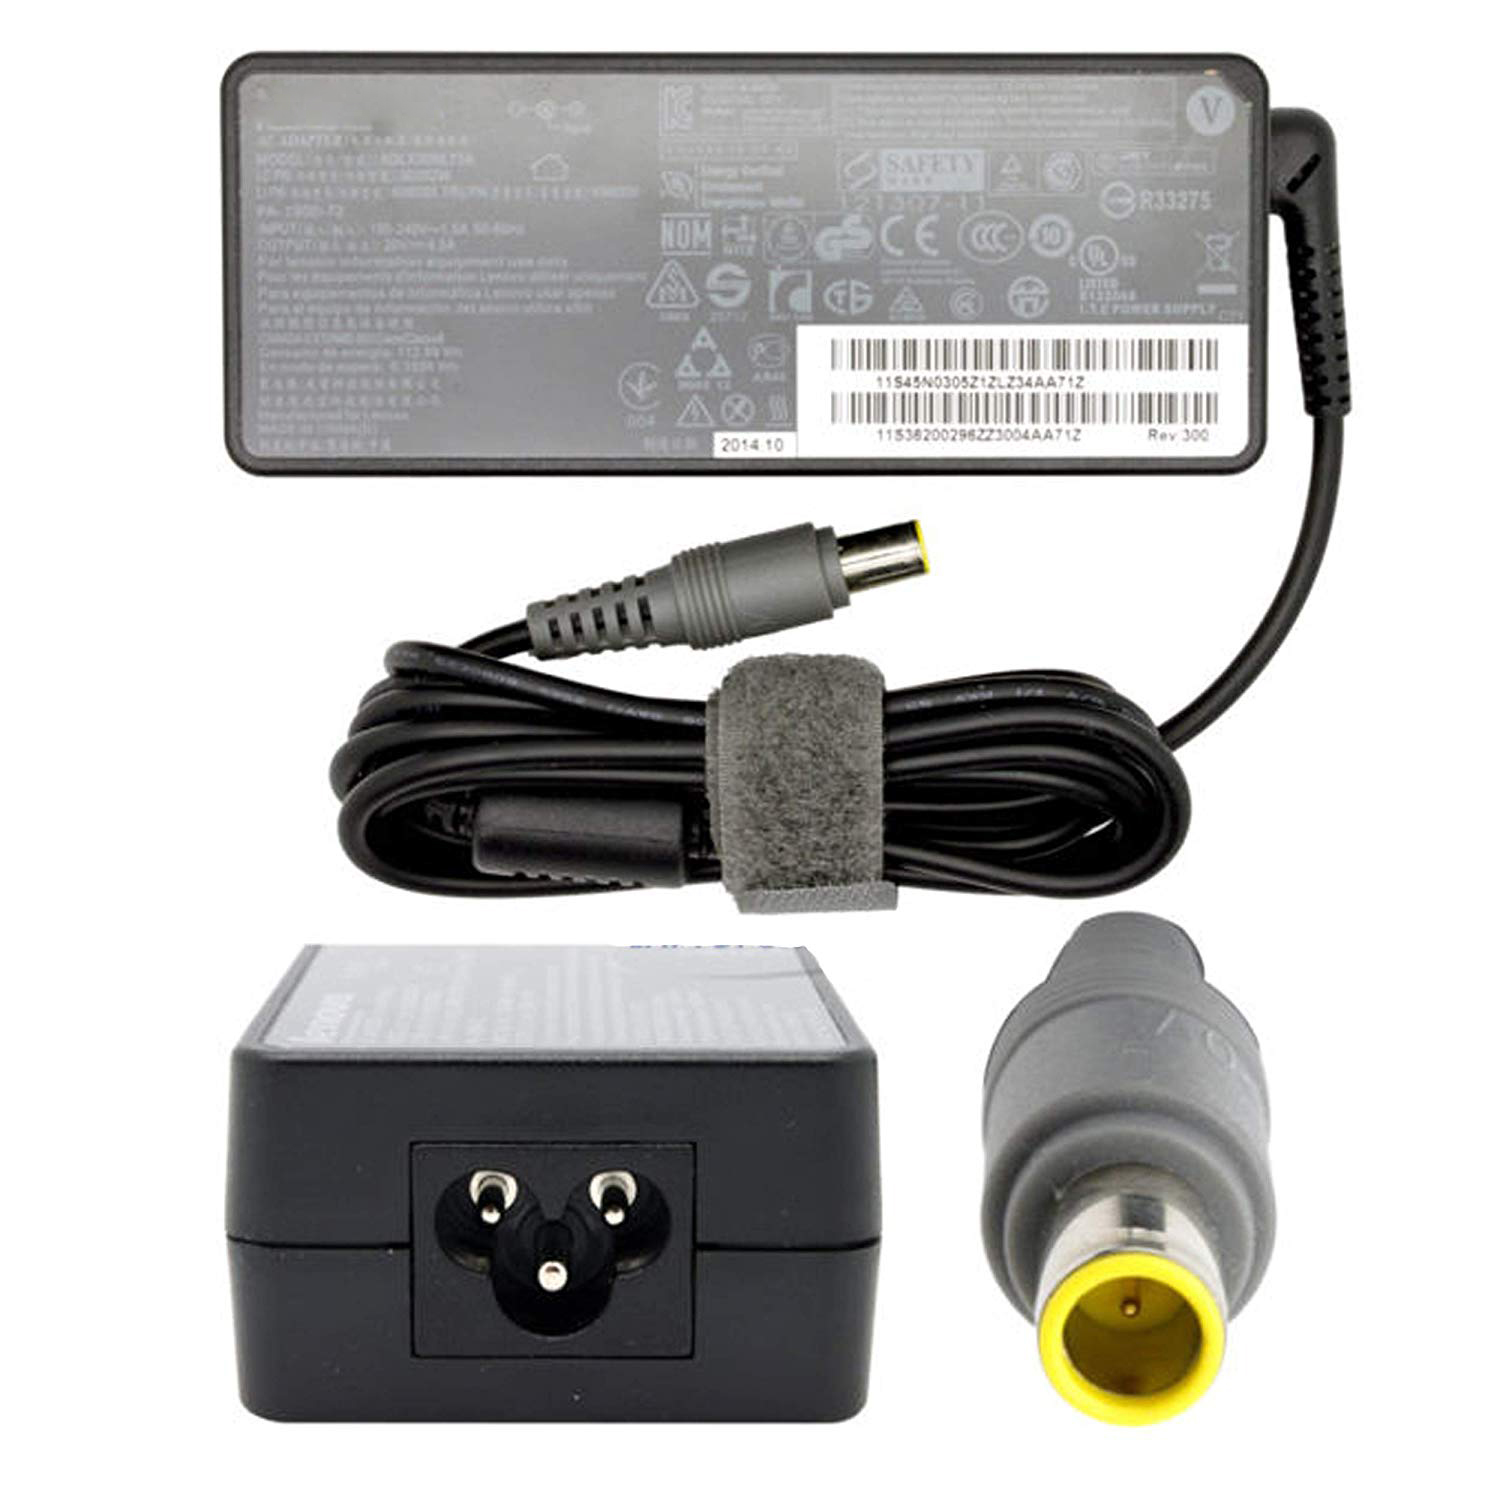 20V 4.5A Adapter for Lenovo Thinkpad T400 T410 T410i T400s T420 T420s T500 T510 Edge 11 13 14 15 Laptop Charger power supply20V 4.5A Adapter for Lenovo Thinkpad T400 T410 T410i T400s T420 T420s T500 T510 Edge 11 13 14 15 Laptop Charger power supply